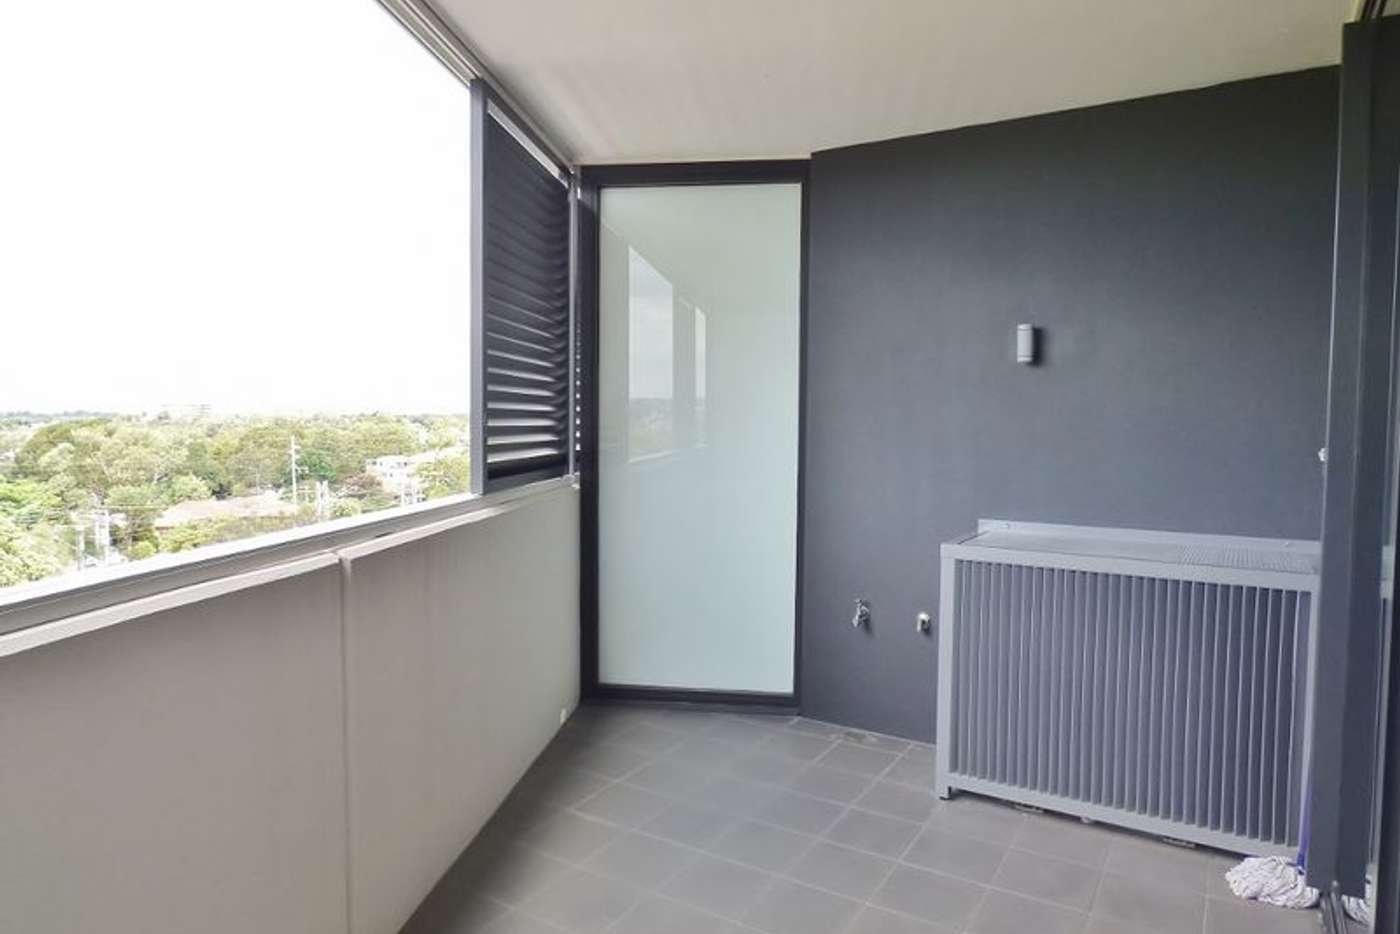 Sixth view of Homely apartment listing, 304/42 Walker St, Rhodes NSW 2138